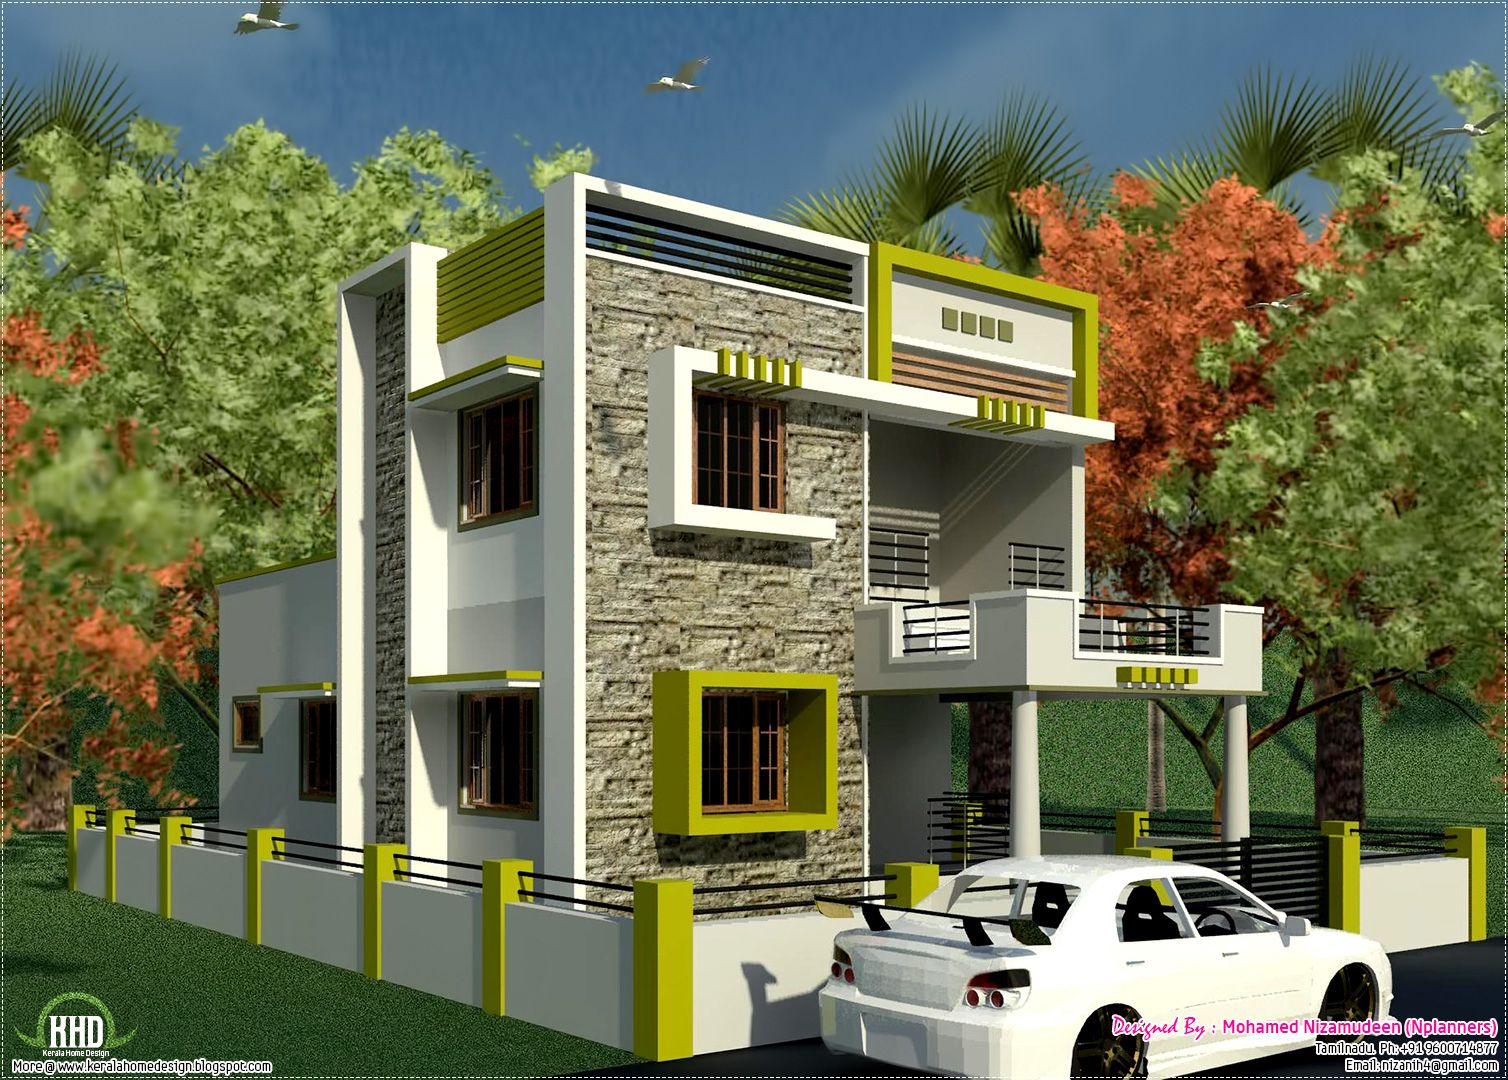 Small house with car park design tobfav com ideas for Best small house designs in india